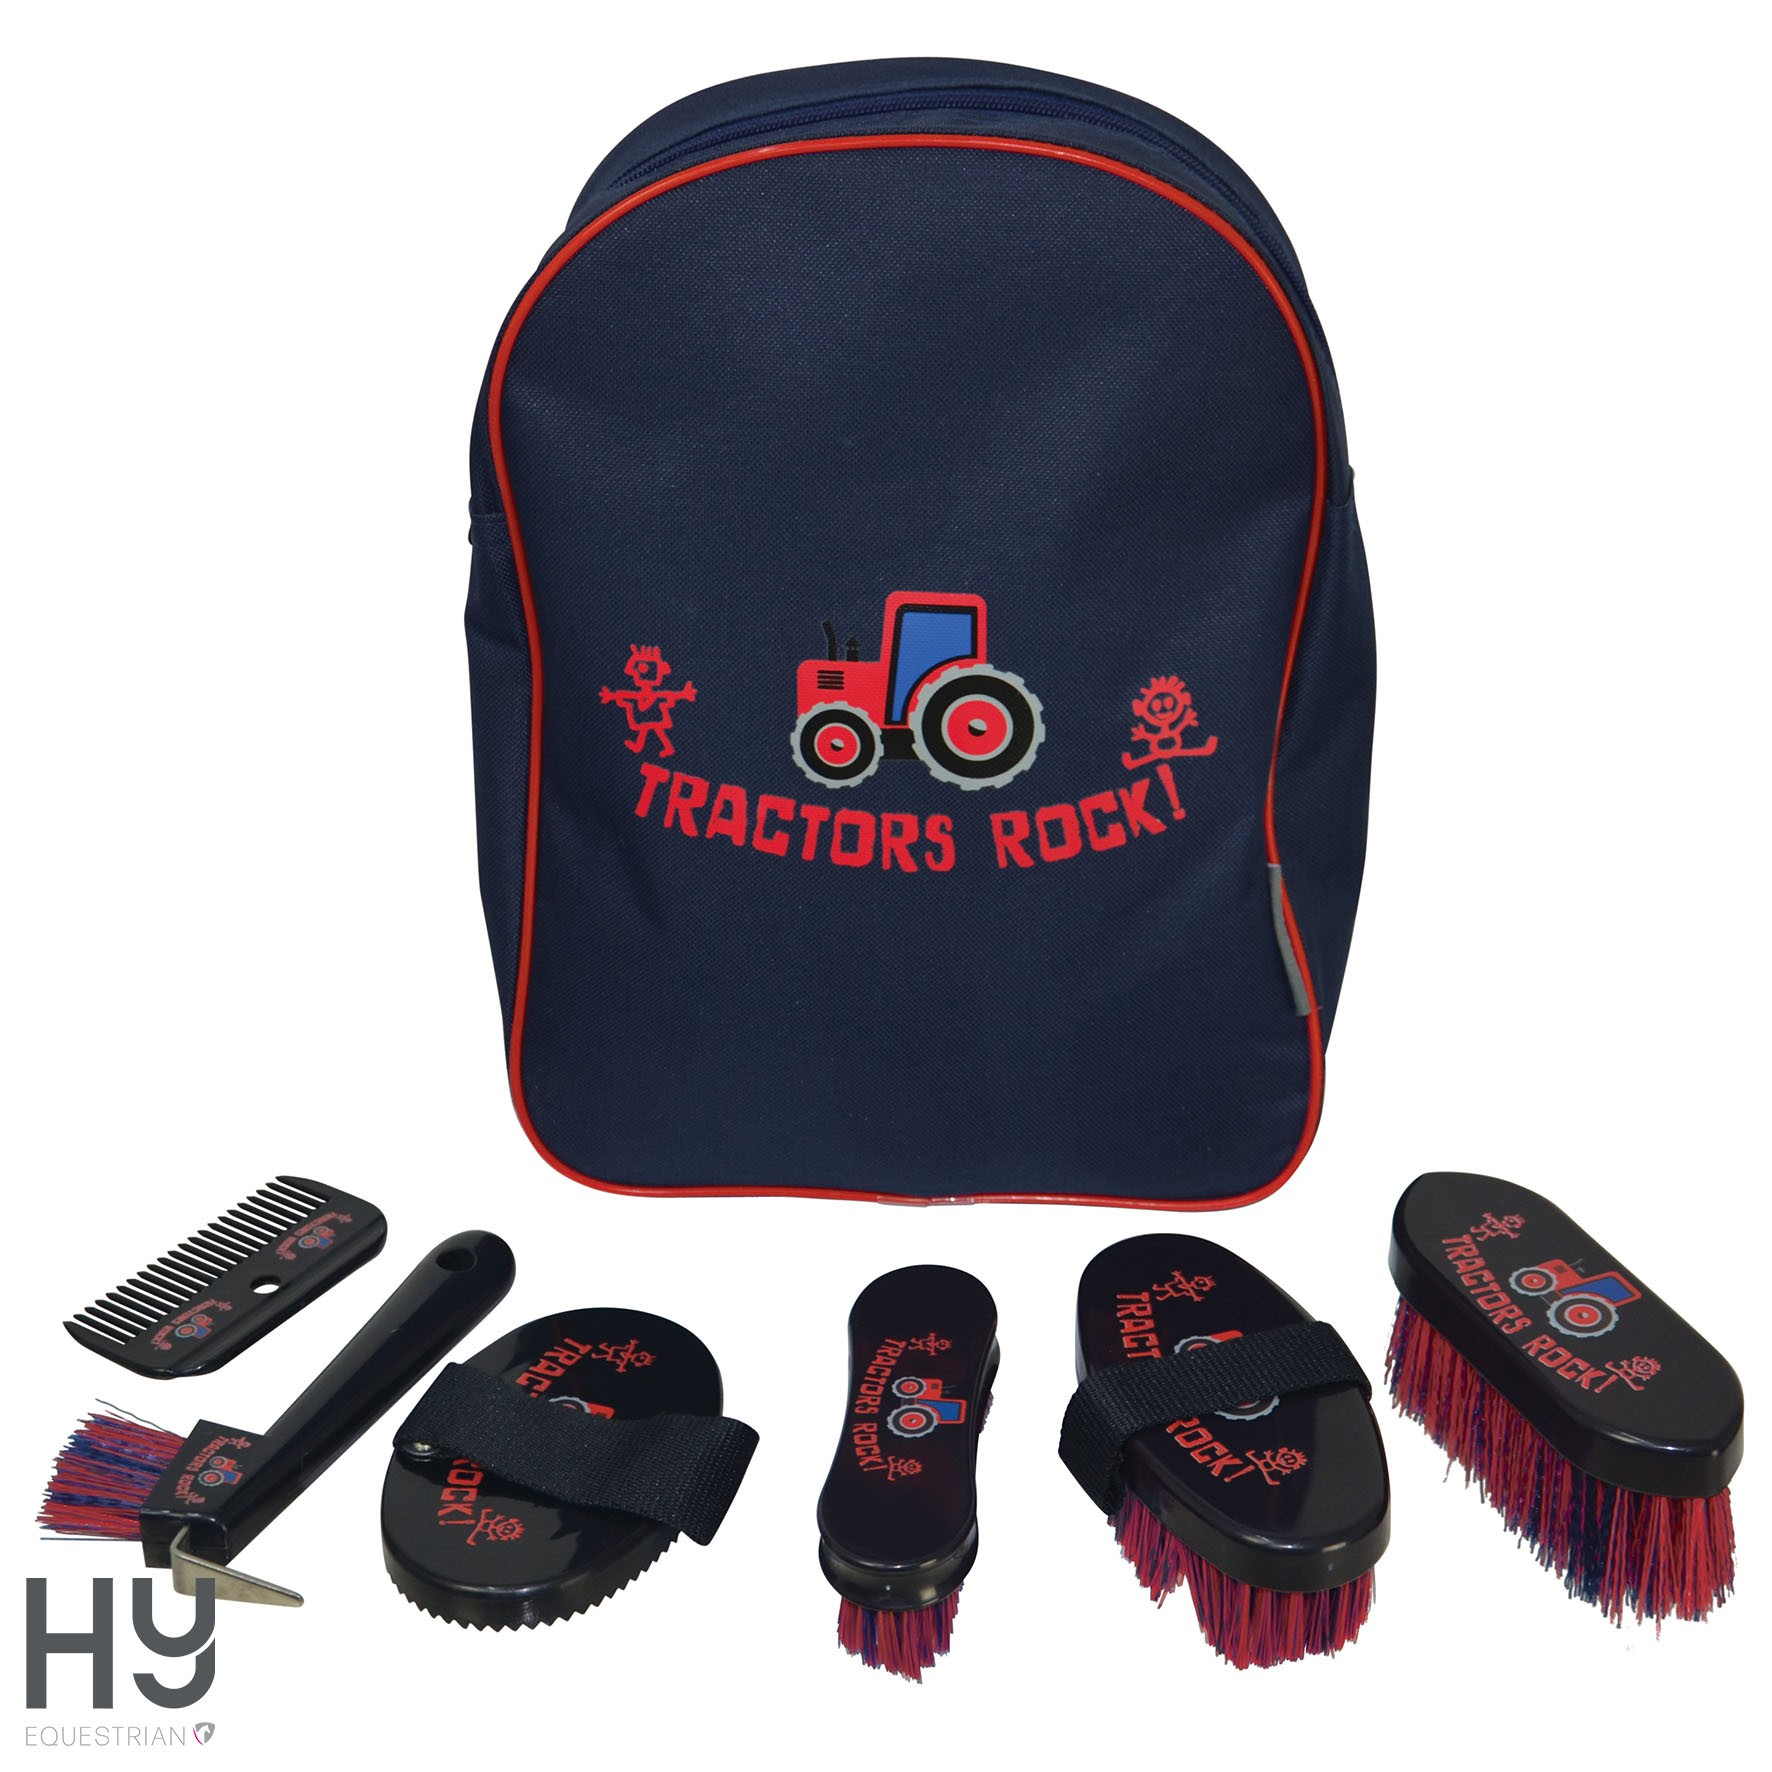 Tractors Rock Complete Grooming Kit Rucksack by Hy Equestrian